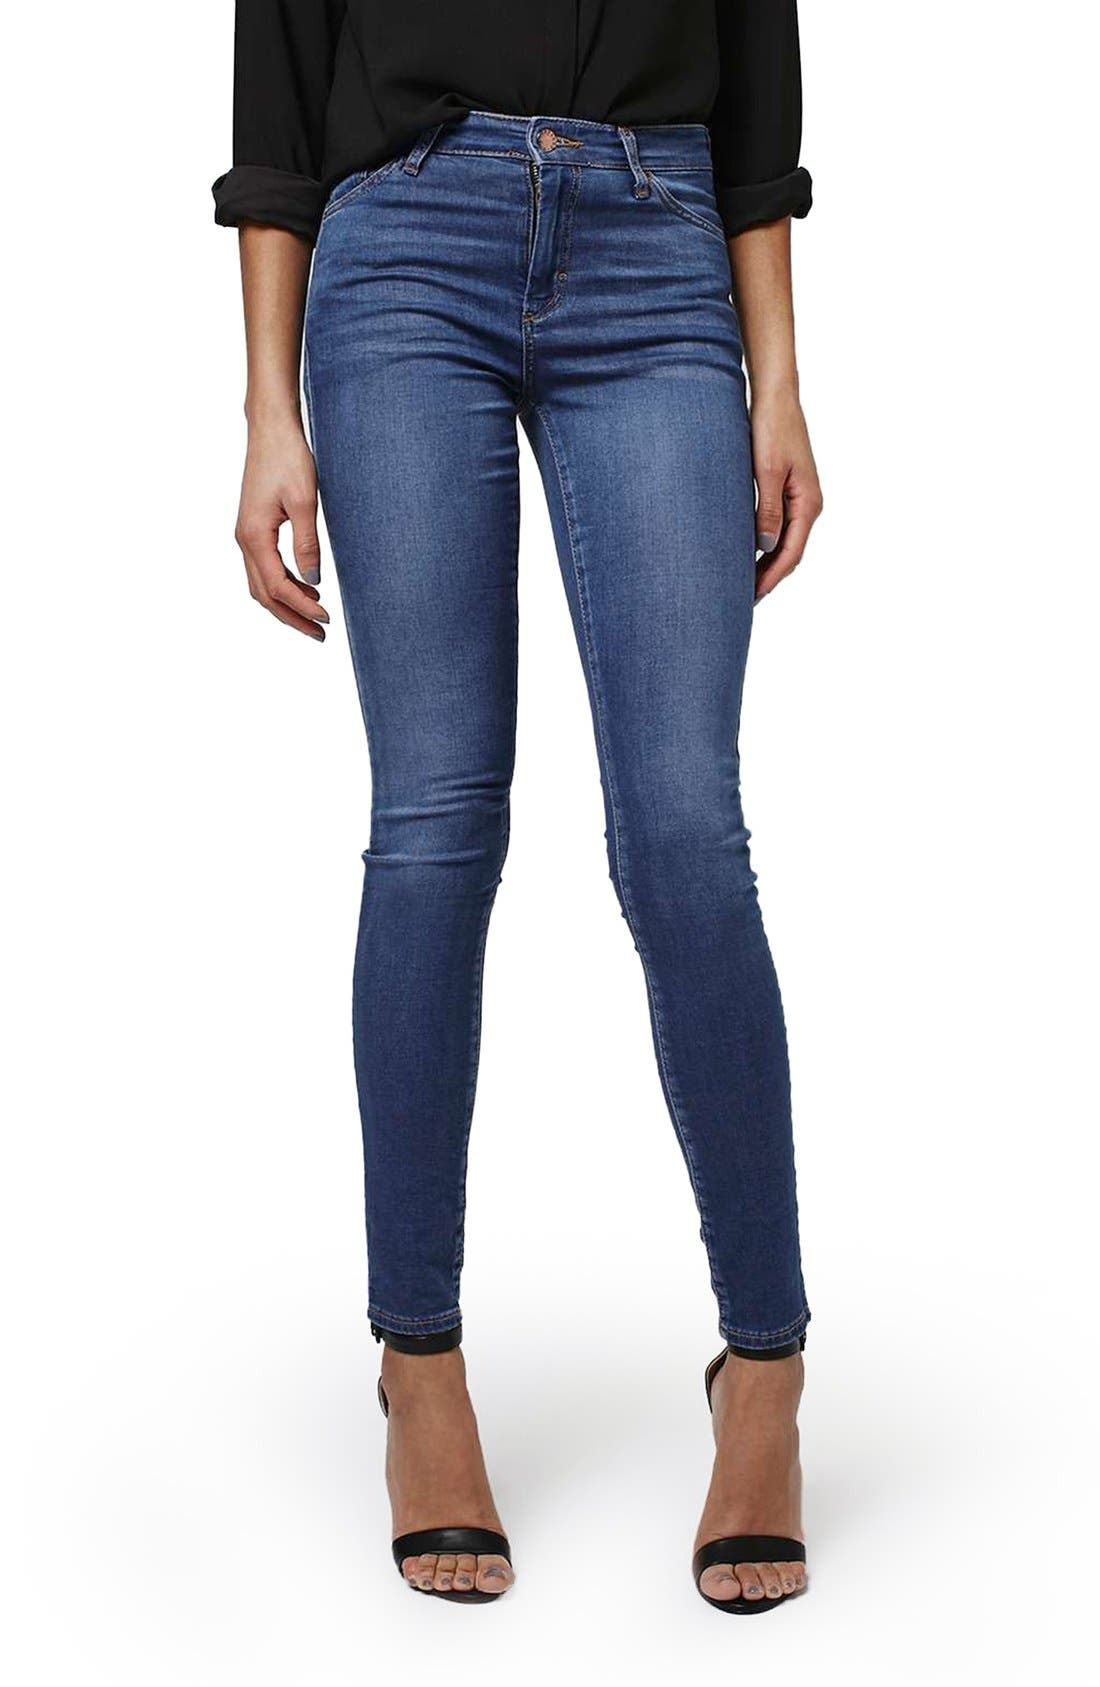 'Leigh' Ankle Skinny Jeans,                             Main thumbnail 1, color,                             400